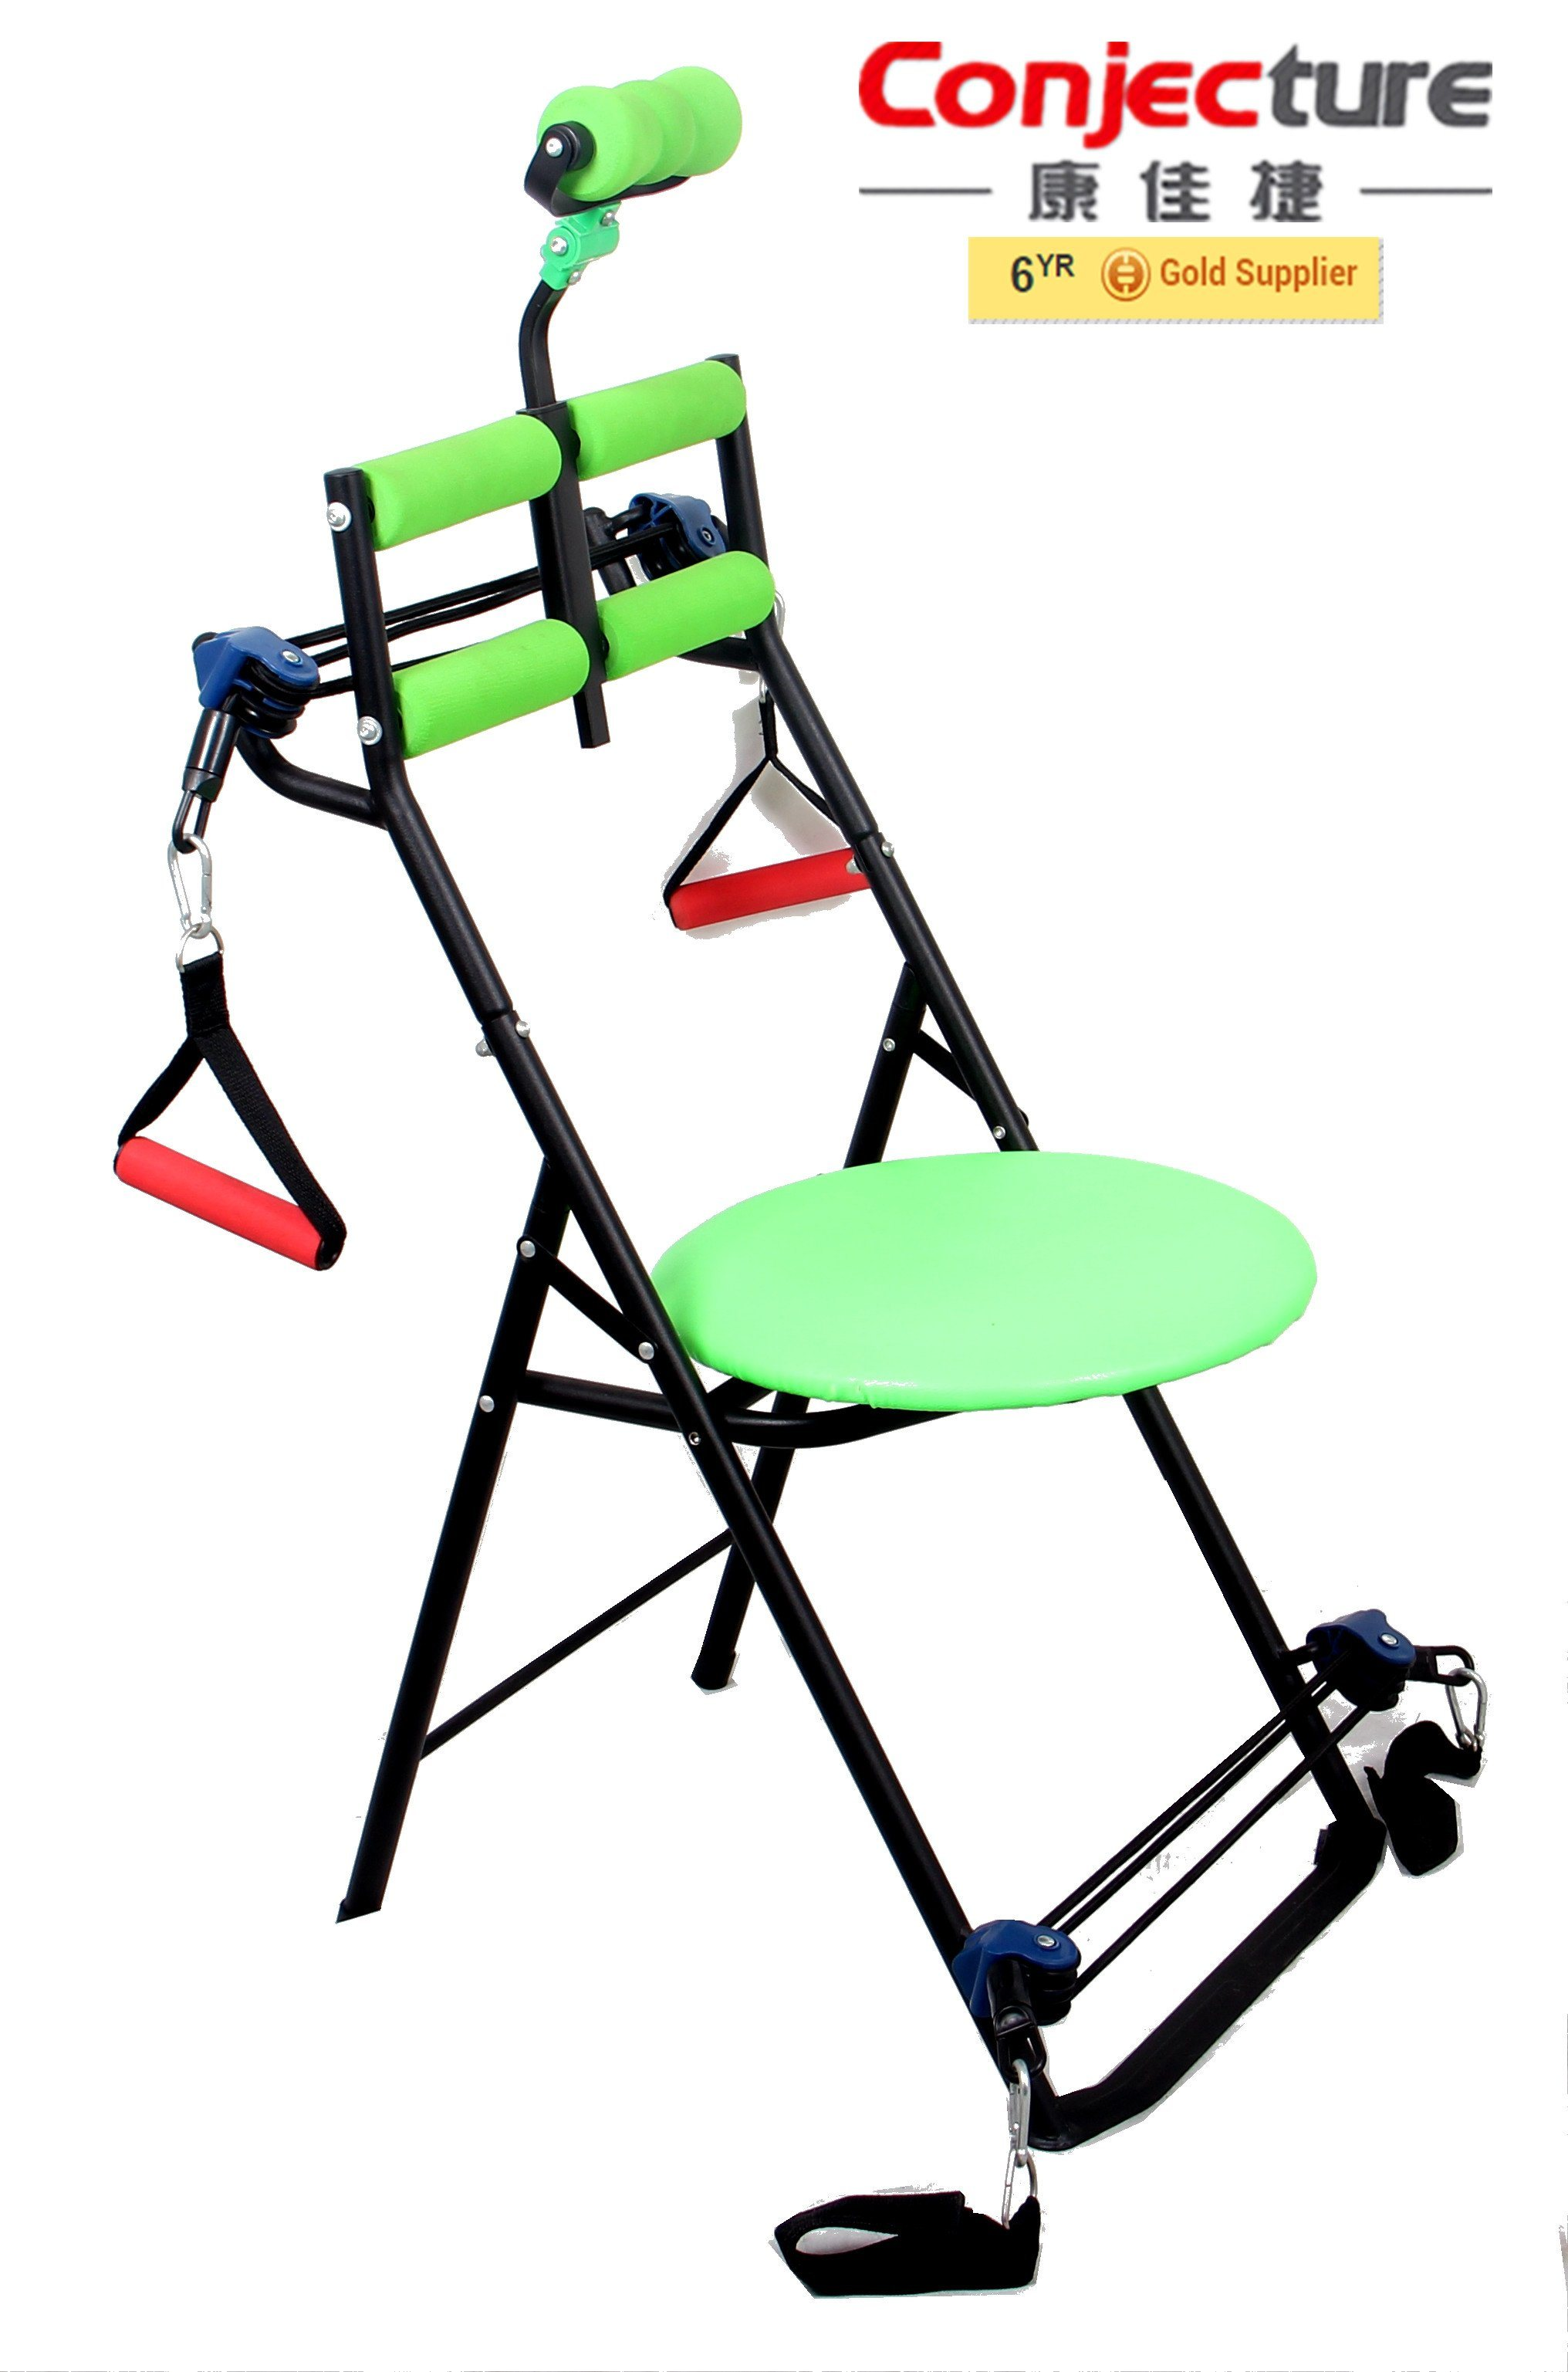 New-Design Home Fitness Equipment Arm Exercise Trainer for Sale